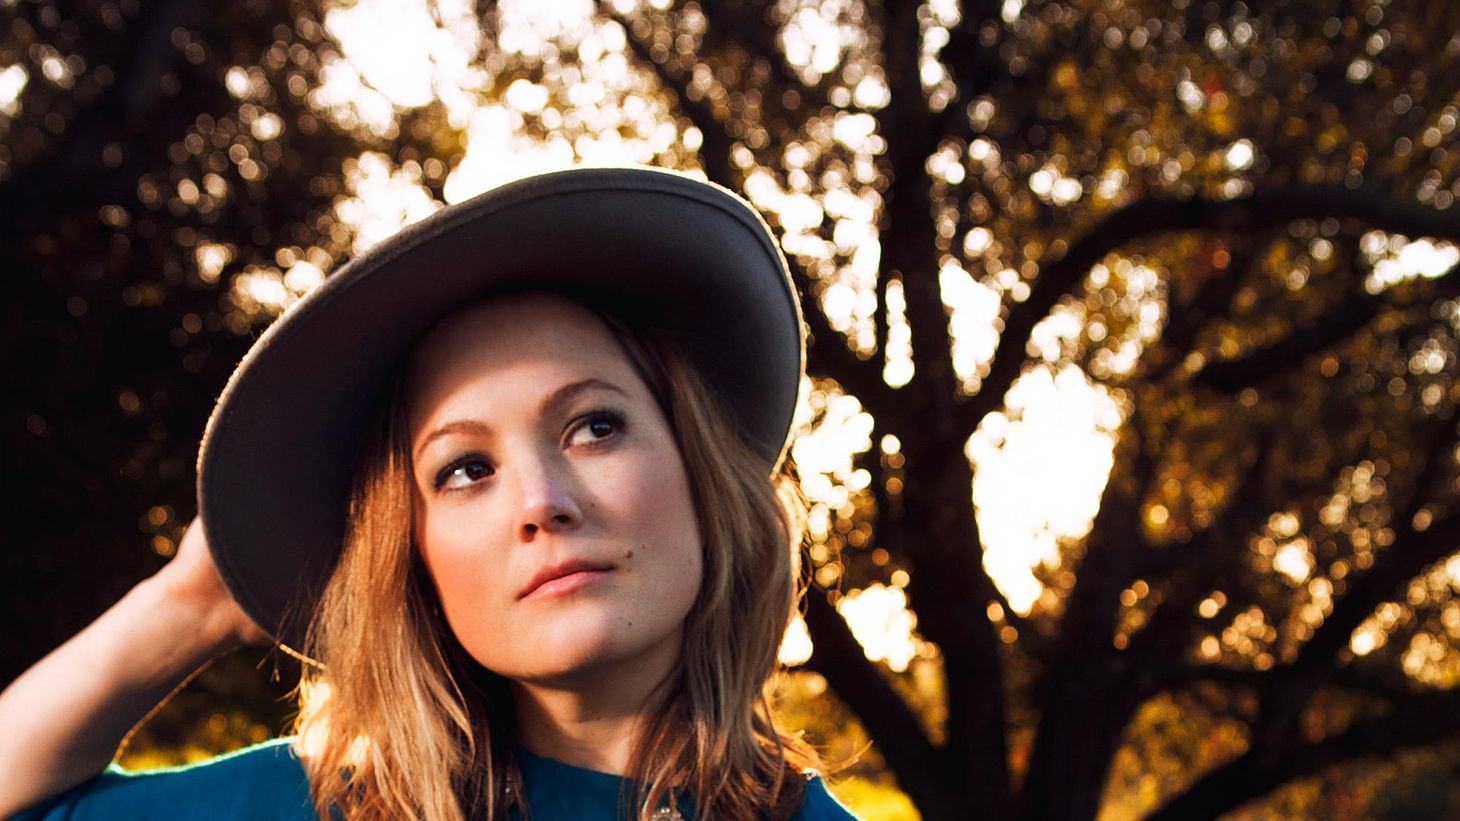 Nickelcreek singer and fiddler Sara Watkins covers a lot of territory on her new CD, with her own versions of songs by Willie Nelson and The Everly Brothers.